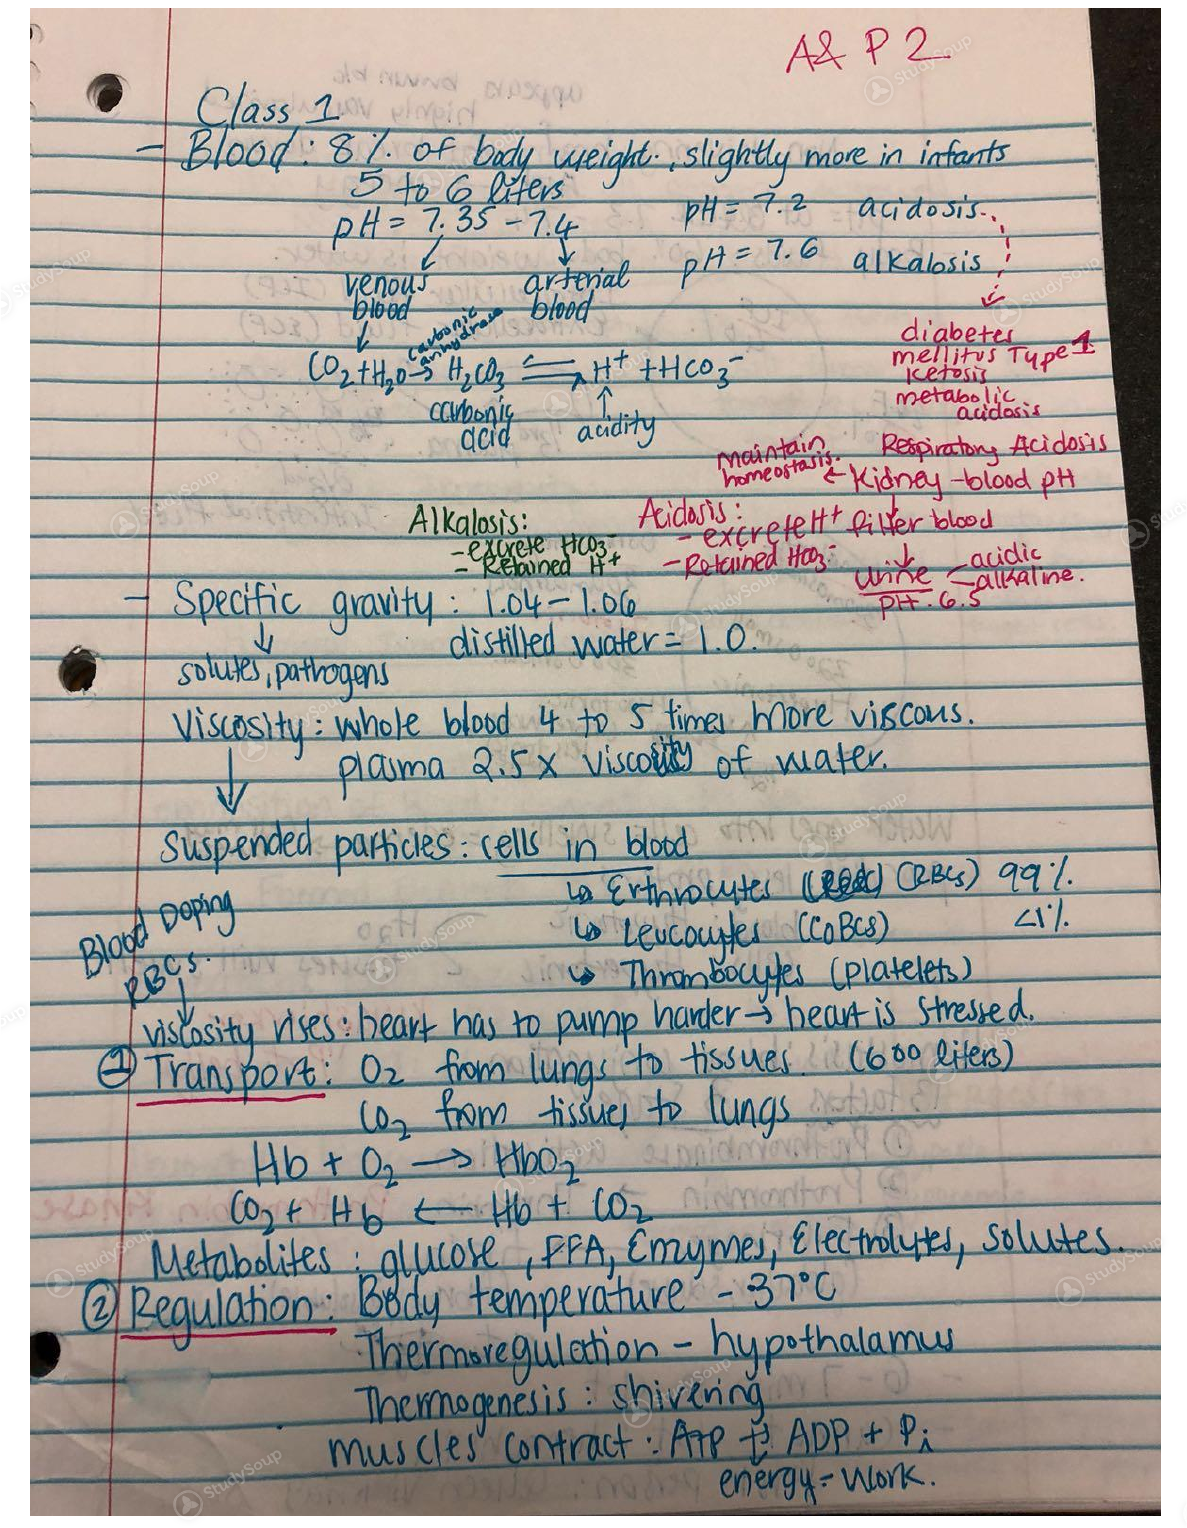 Anatomy And Physiology 2 Midterm Exam Study Guide - Free User Guide •